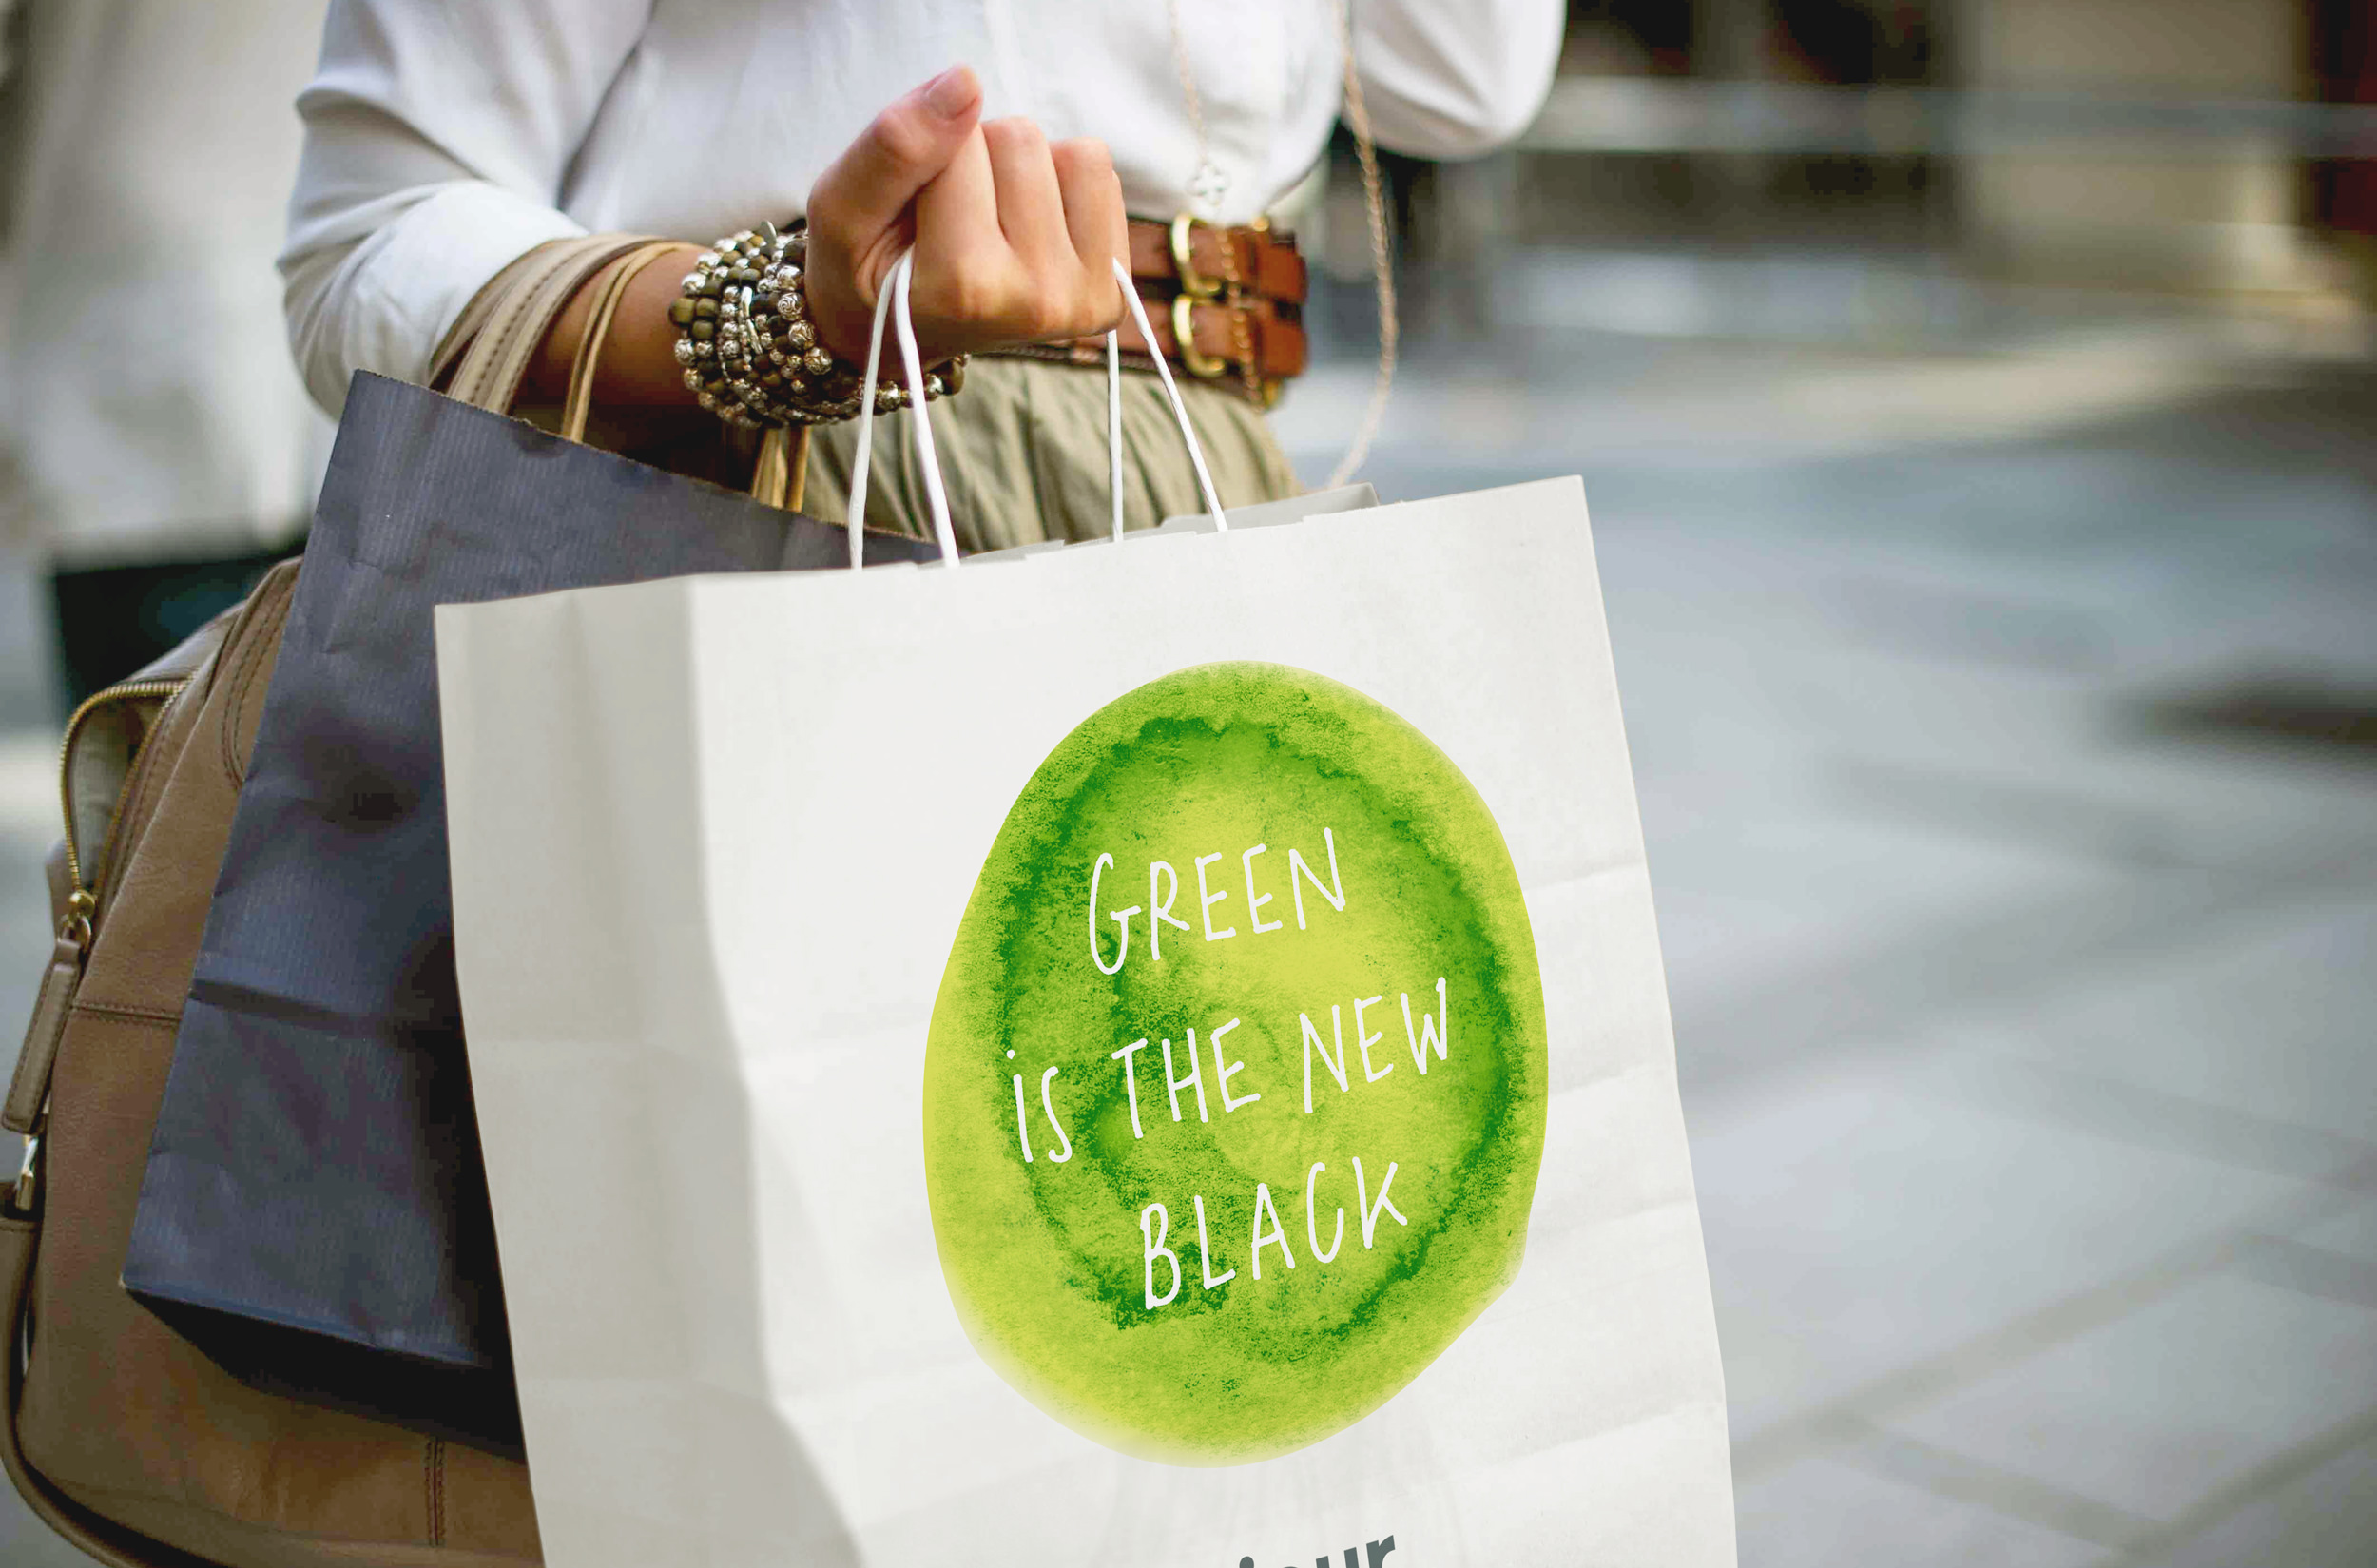 Green is the new black - 1